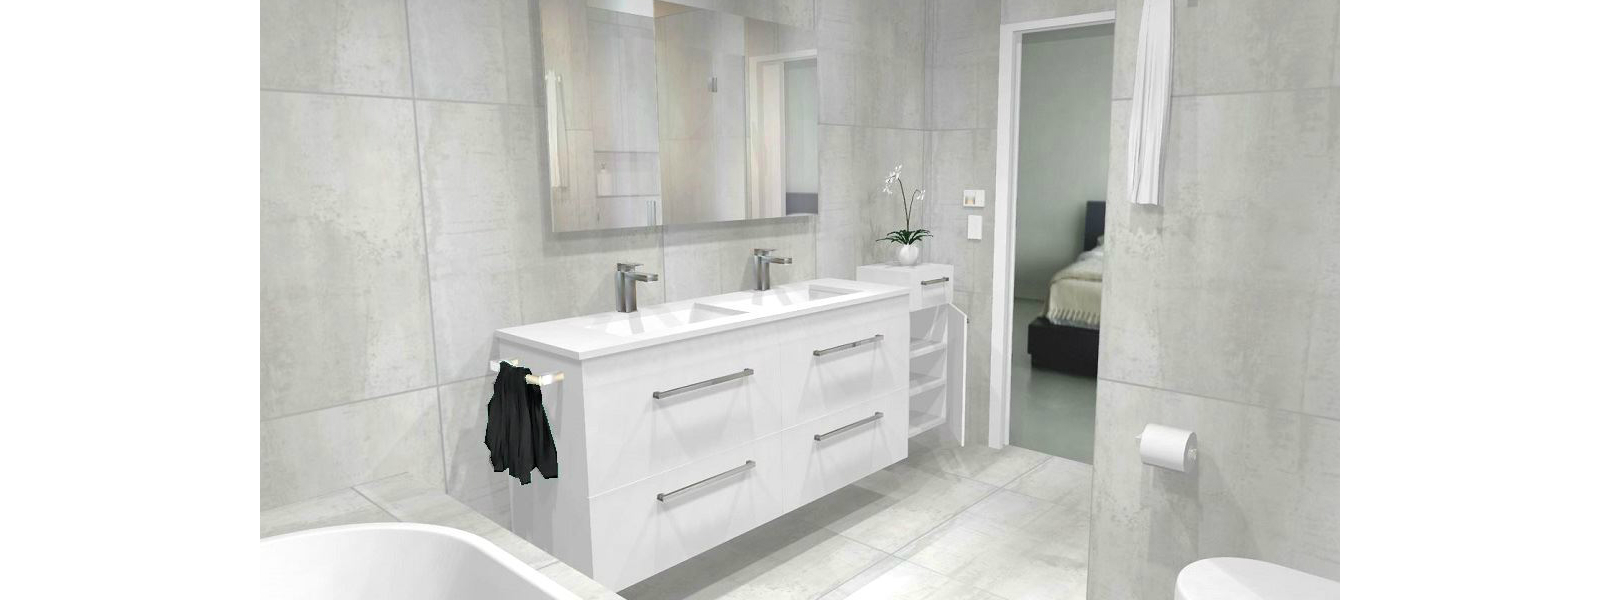 Bathroom Designer | We Design Your New Bathroom